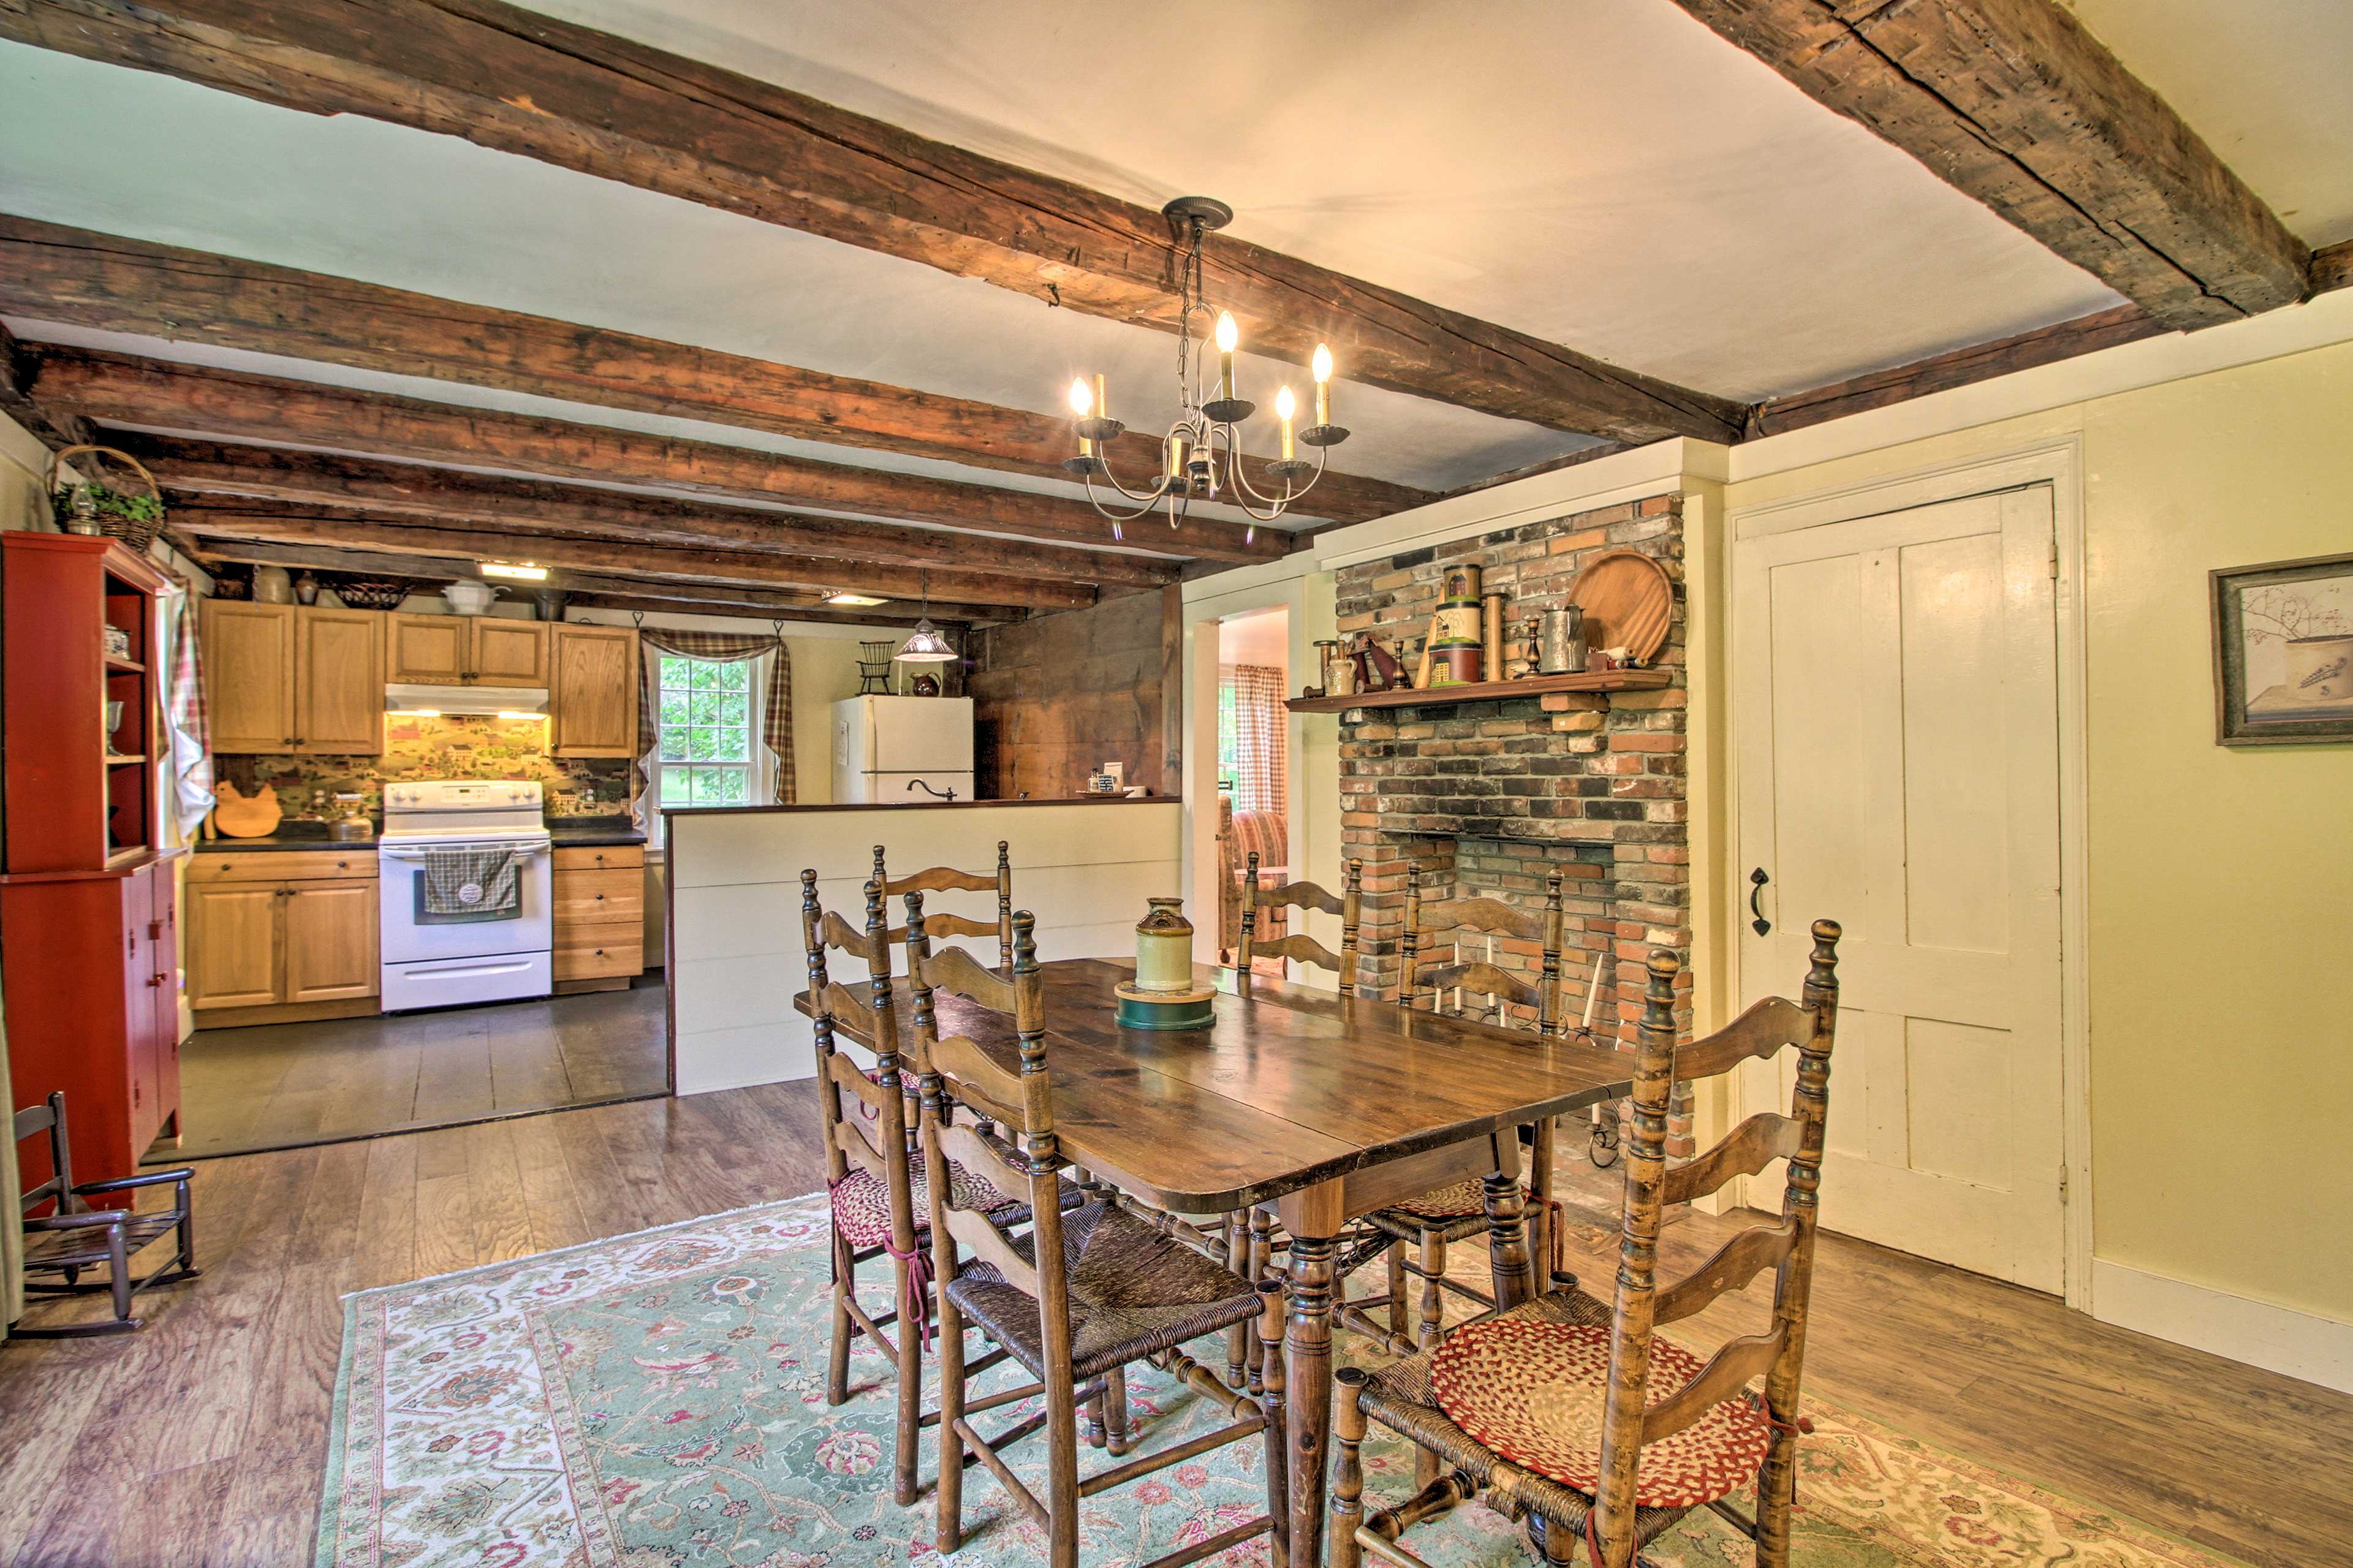 This vacation rental features 4 bedrooms, 1 bathroom and accommodations for 8.